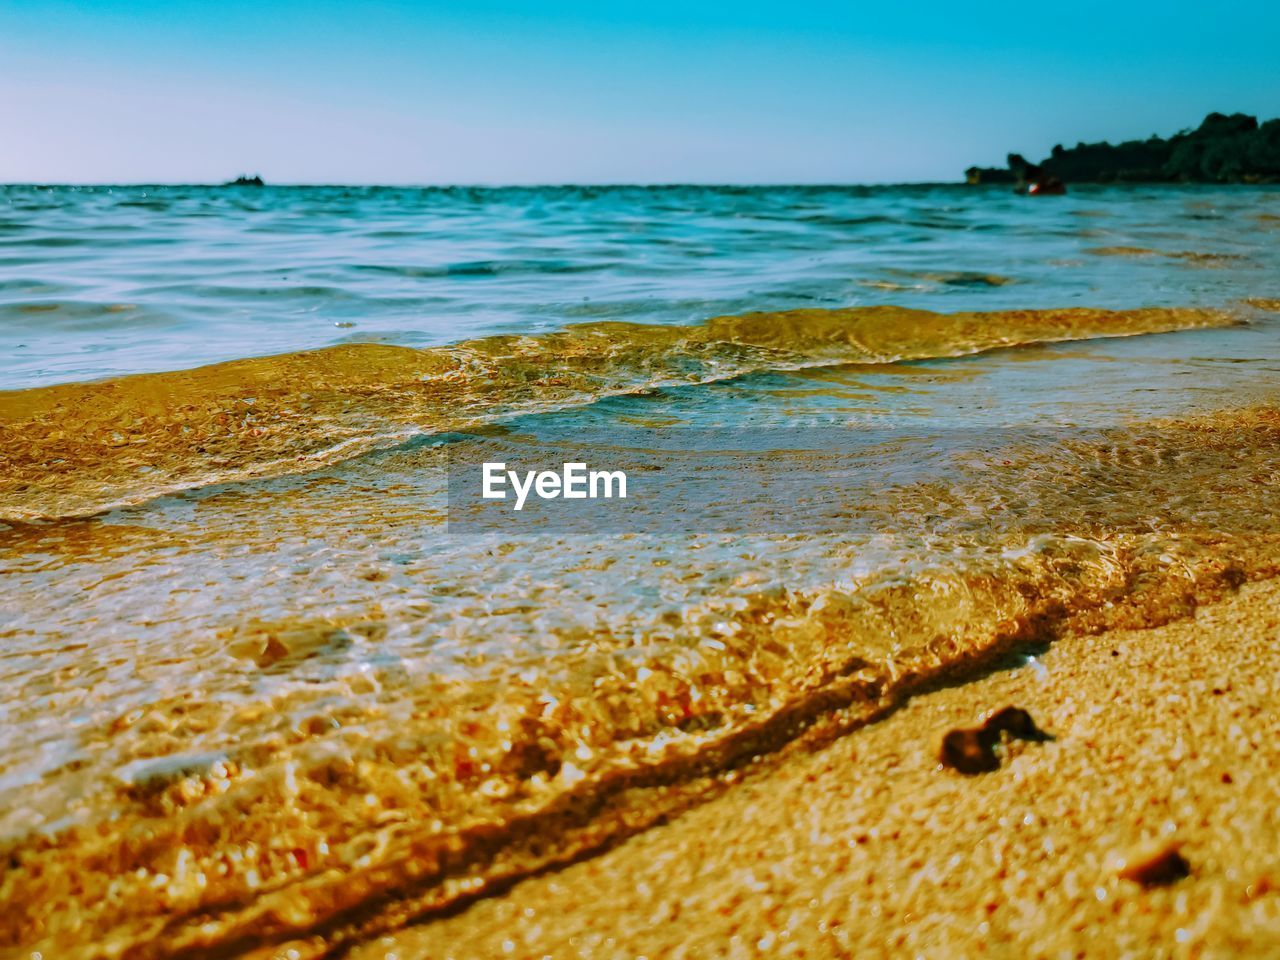 sea, water, beach, land, wave, motion, beauty in nature, scenics - nature, no people, sky, nature, sport, aquatic sport, tranquility, day, outdoors, horizon over water, sand, surface level